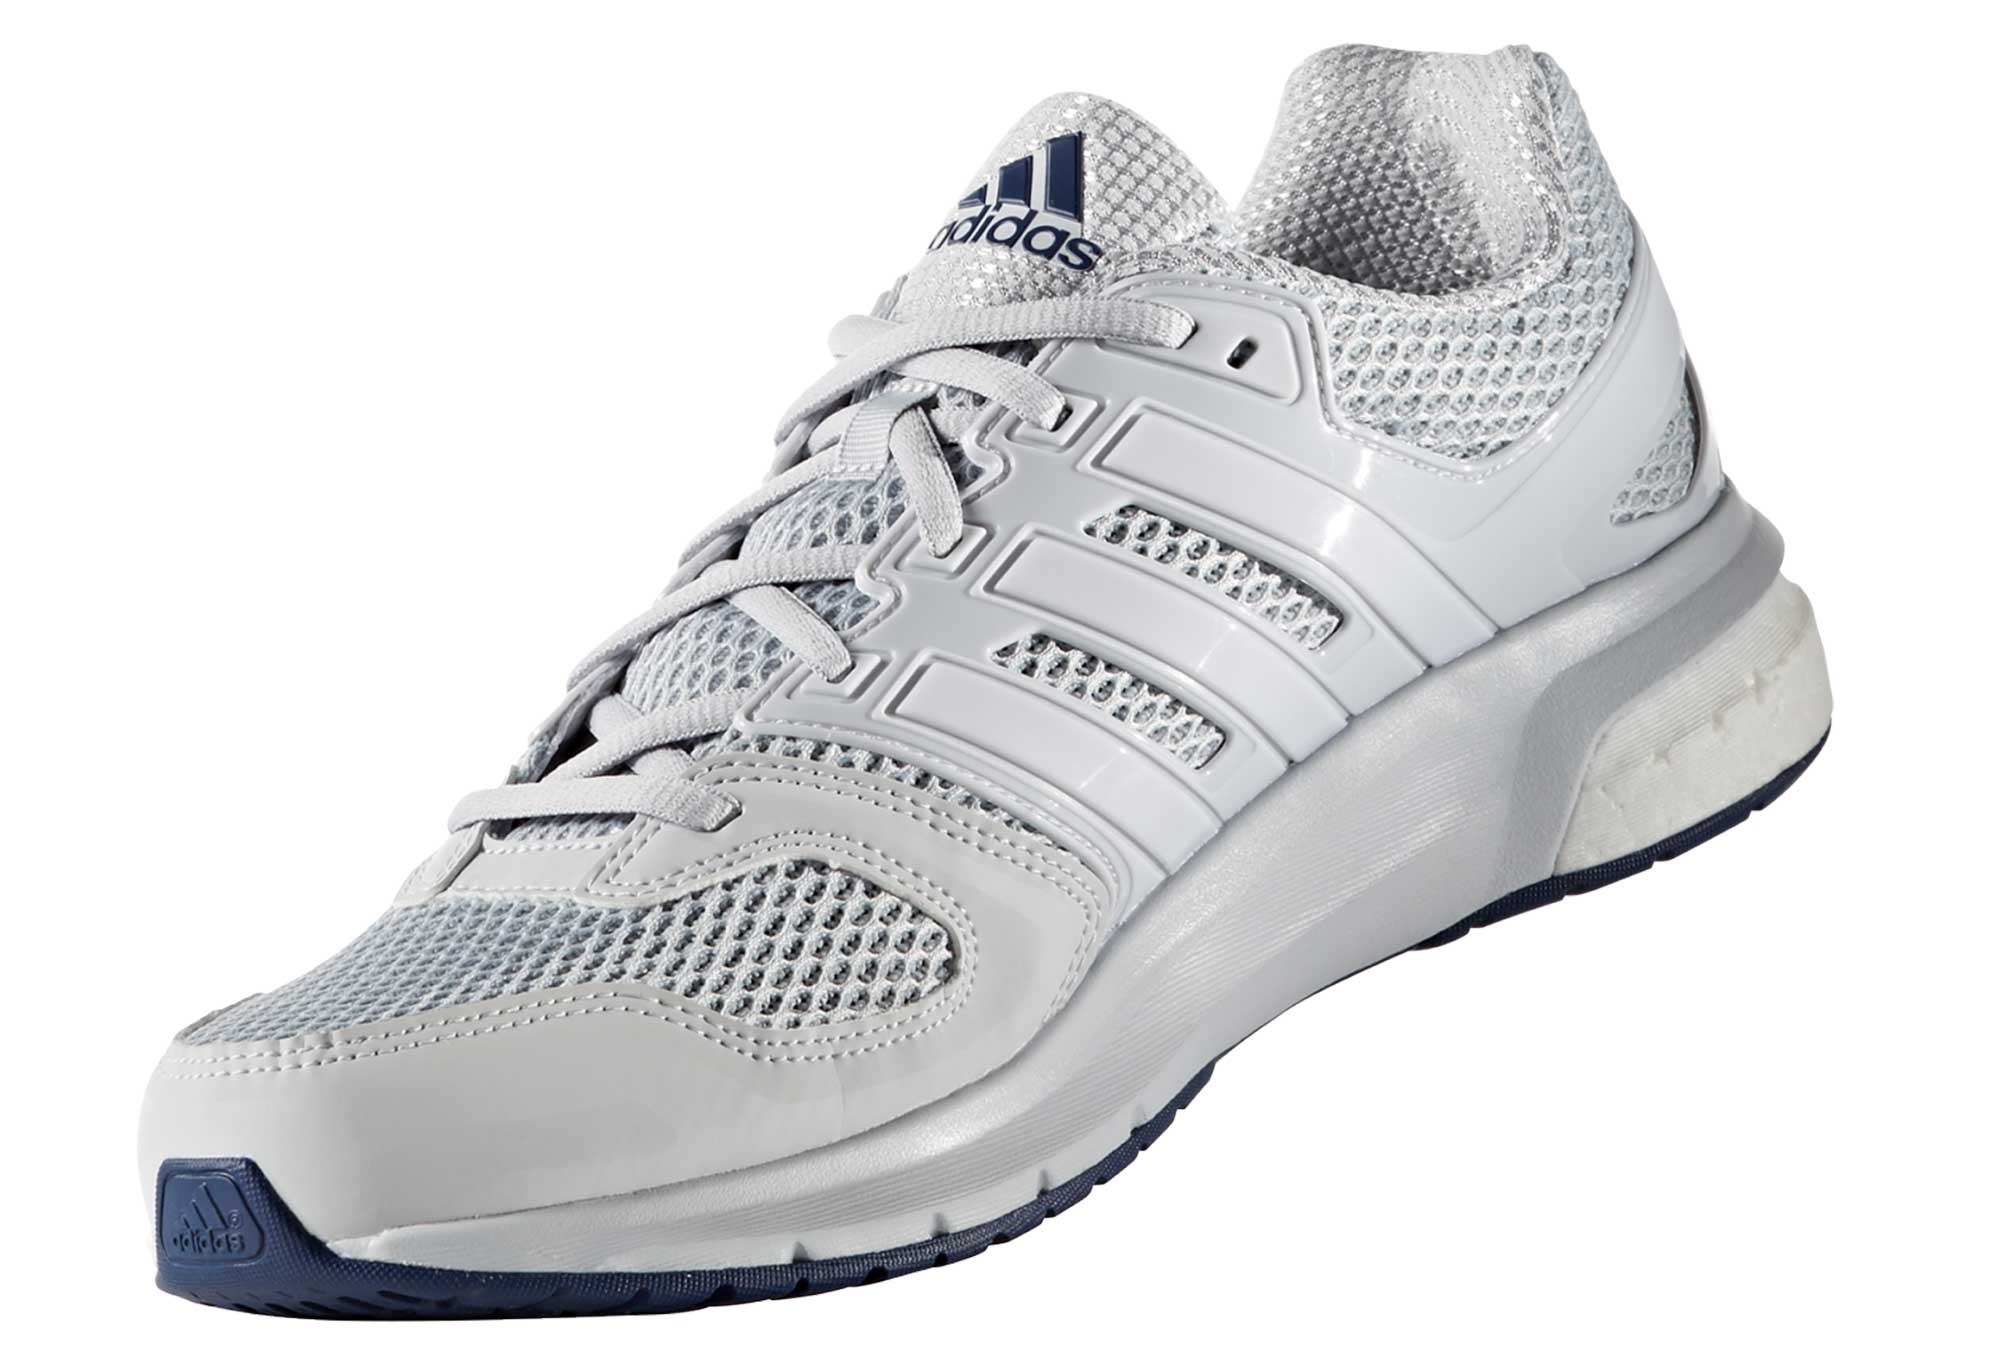 BOOST Hombres running QUESTAR Blanco adidas Gris IYvy76mbfg